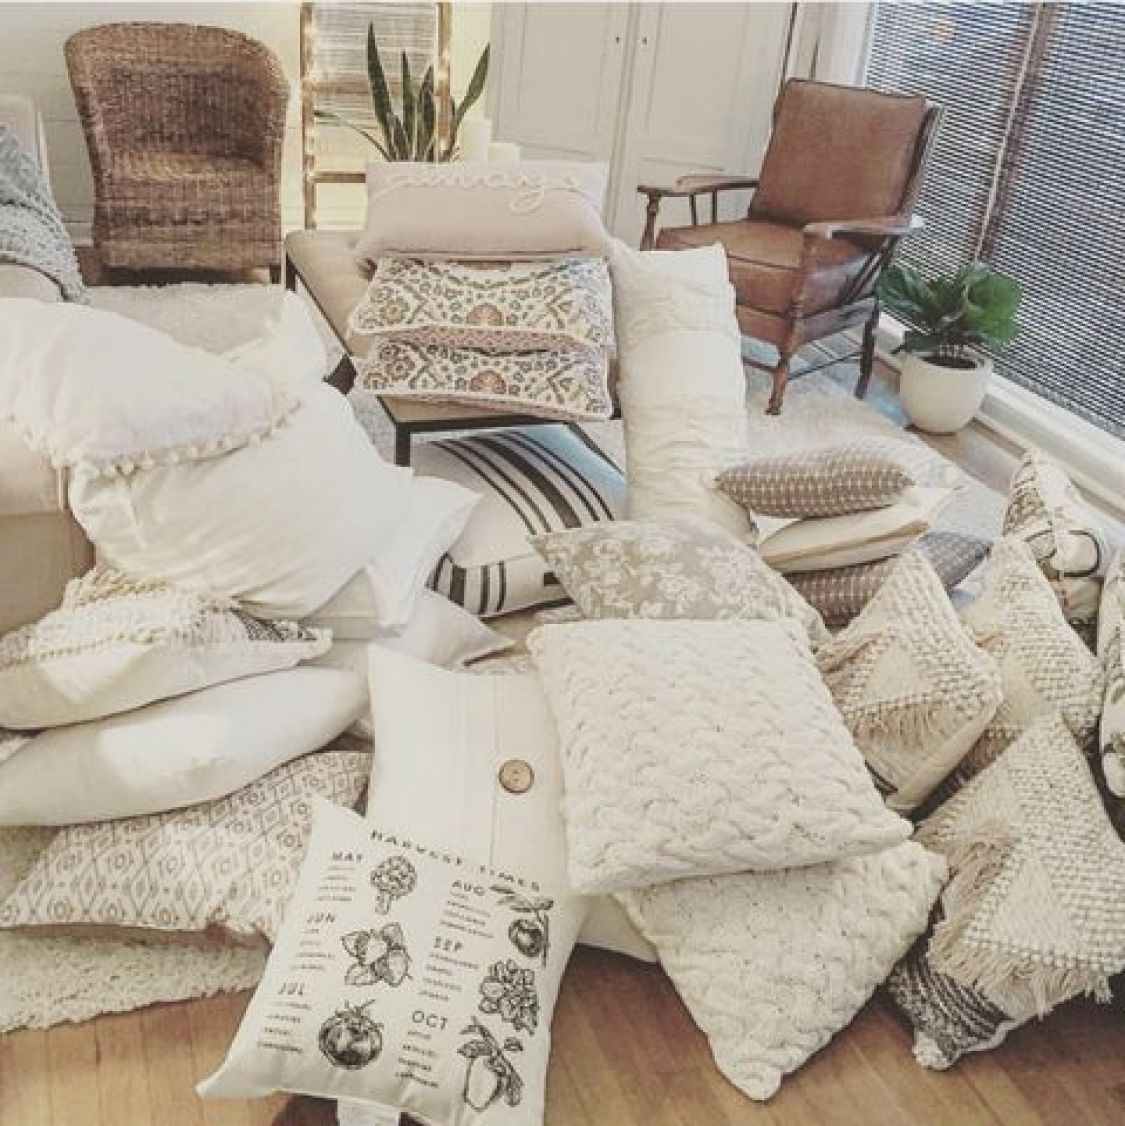 The problem with throw pillows